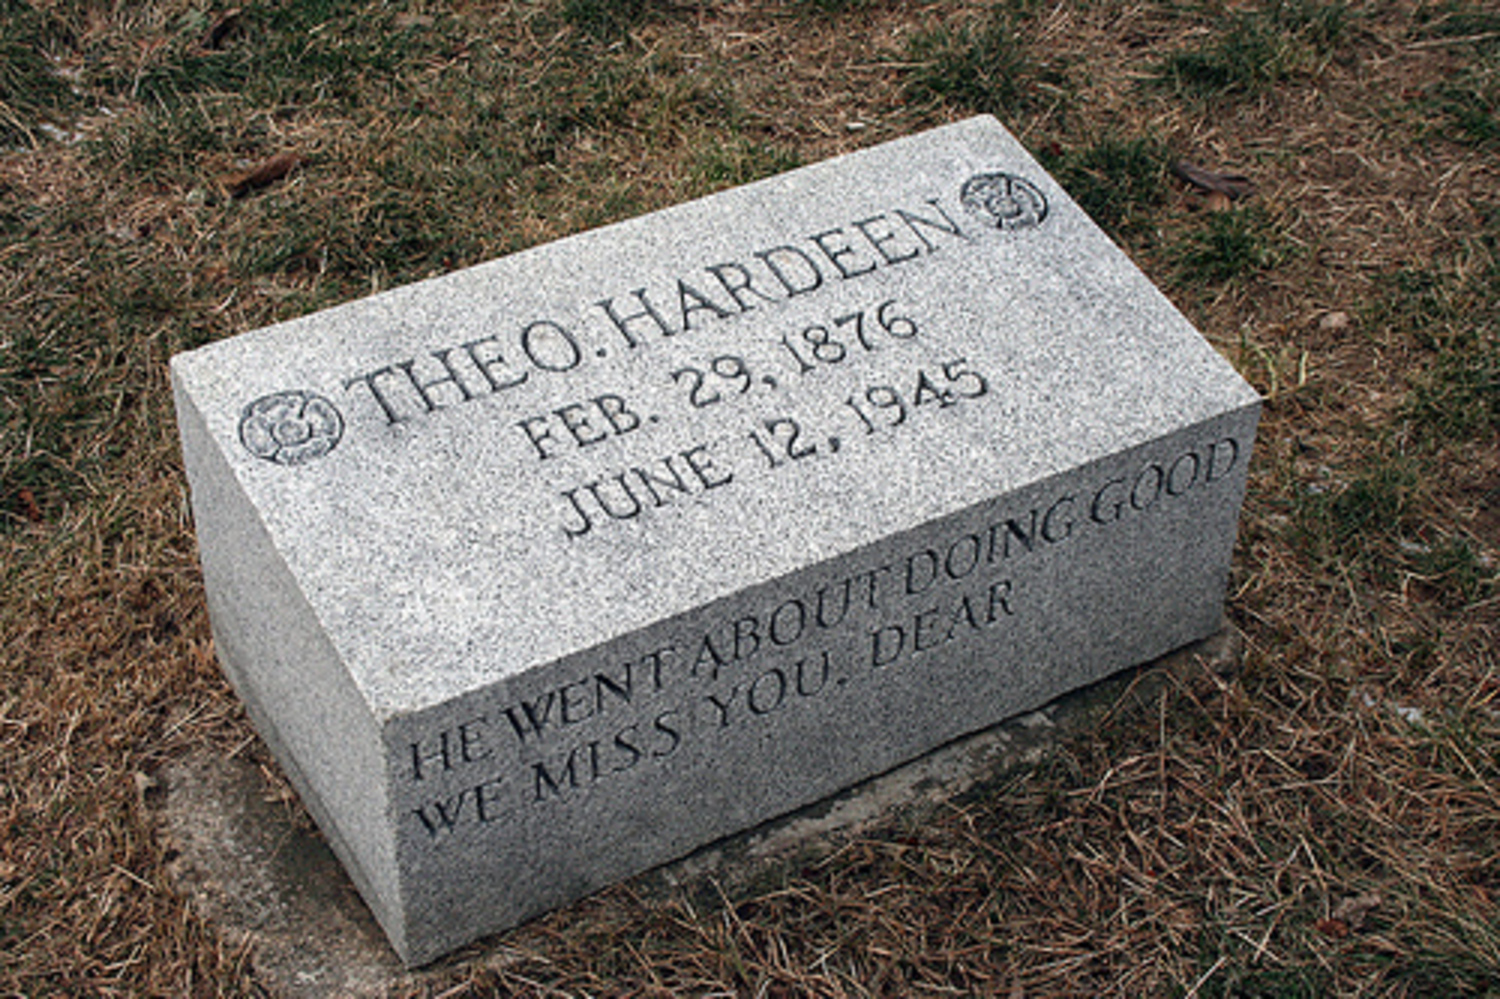 Houdini's brother buried nearby.